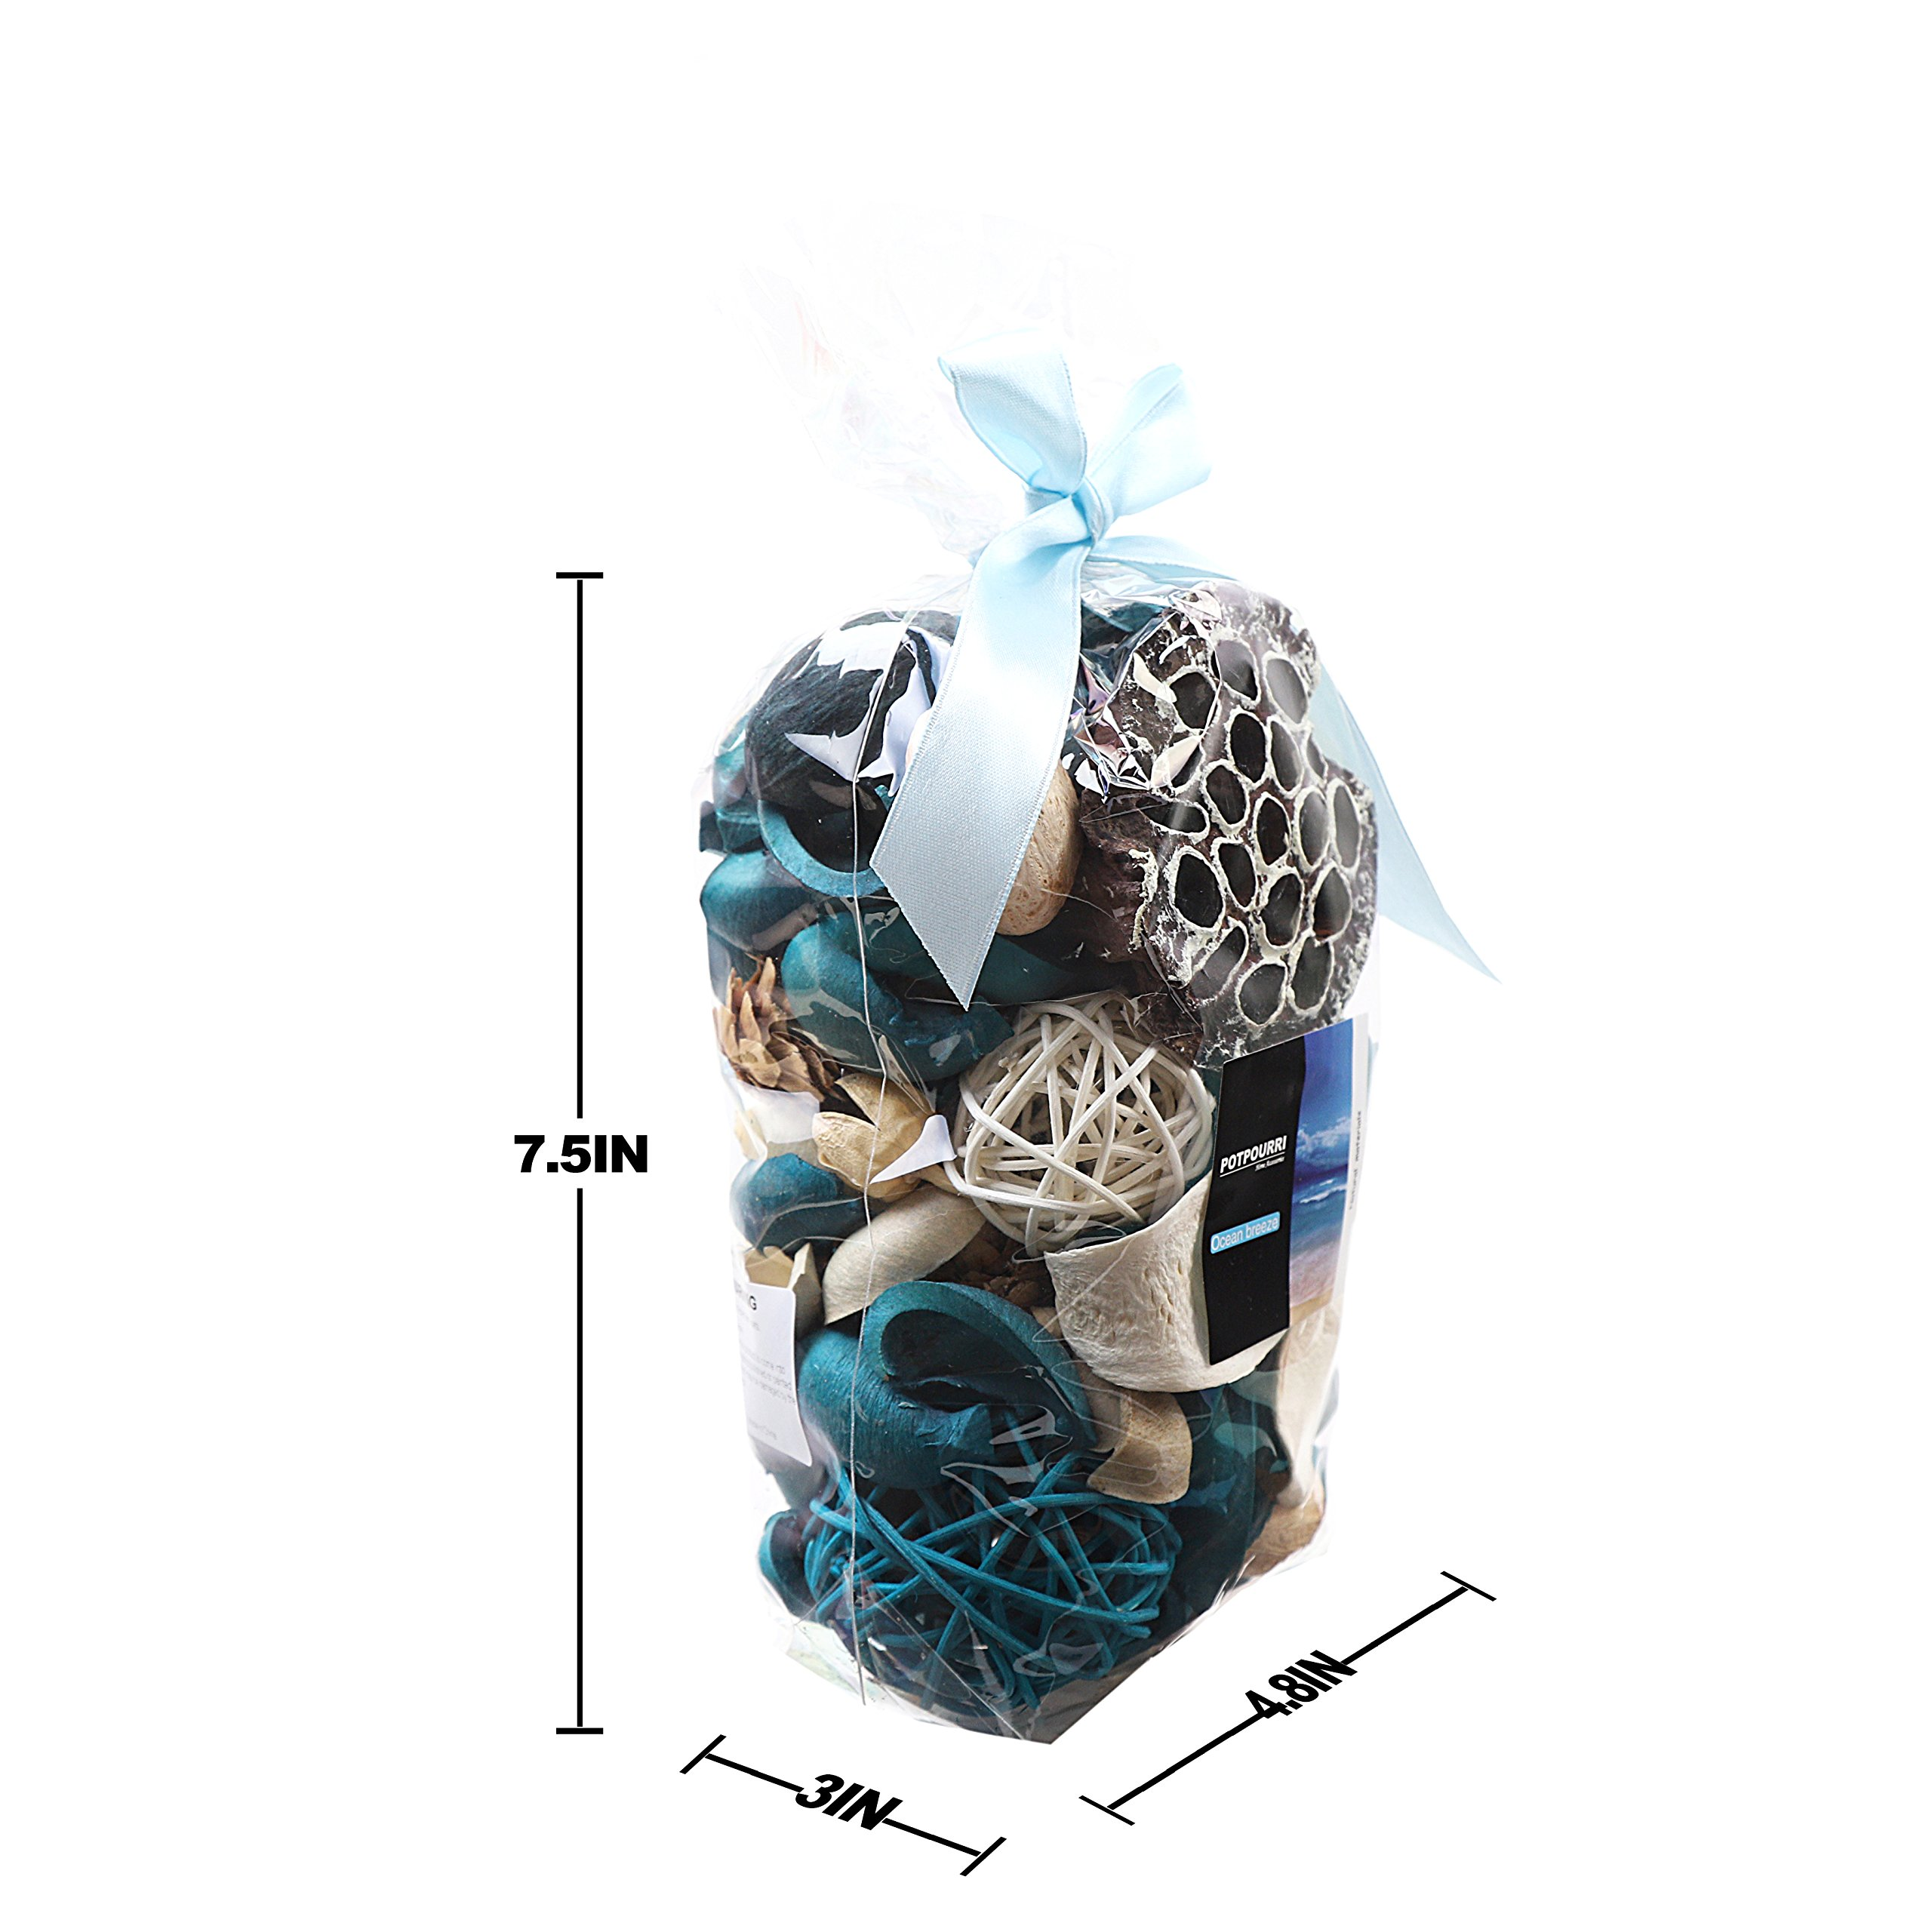 Qingbei Rina Ocean Scent Summer Potpourri Bag Decorative Perfume Sachet, Rattan Balls Lotus Pods Pine Cones Dried Flowers and Plants, 9.9 Ounce Turquoise Blue by Qingbei Rina (Image #5)